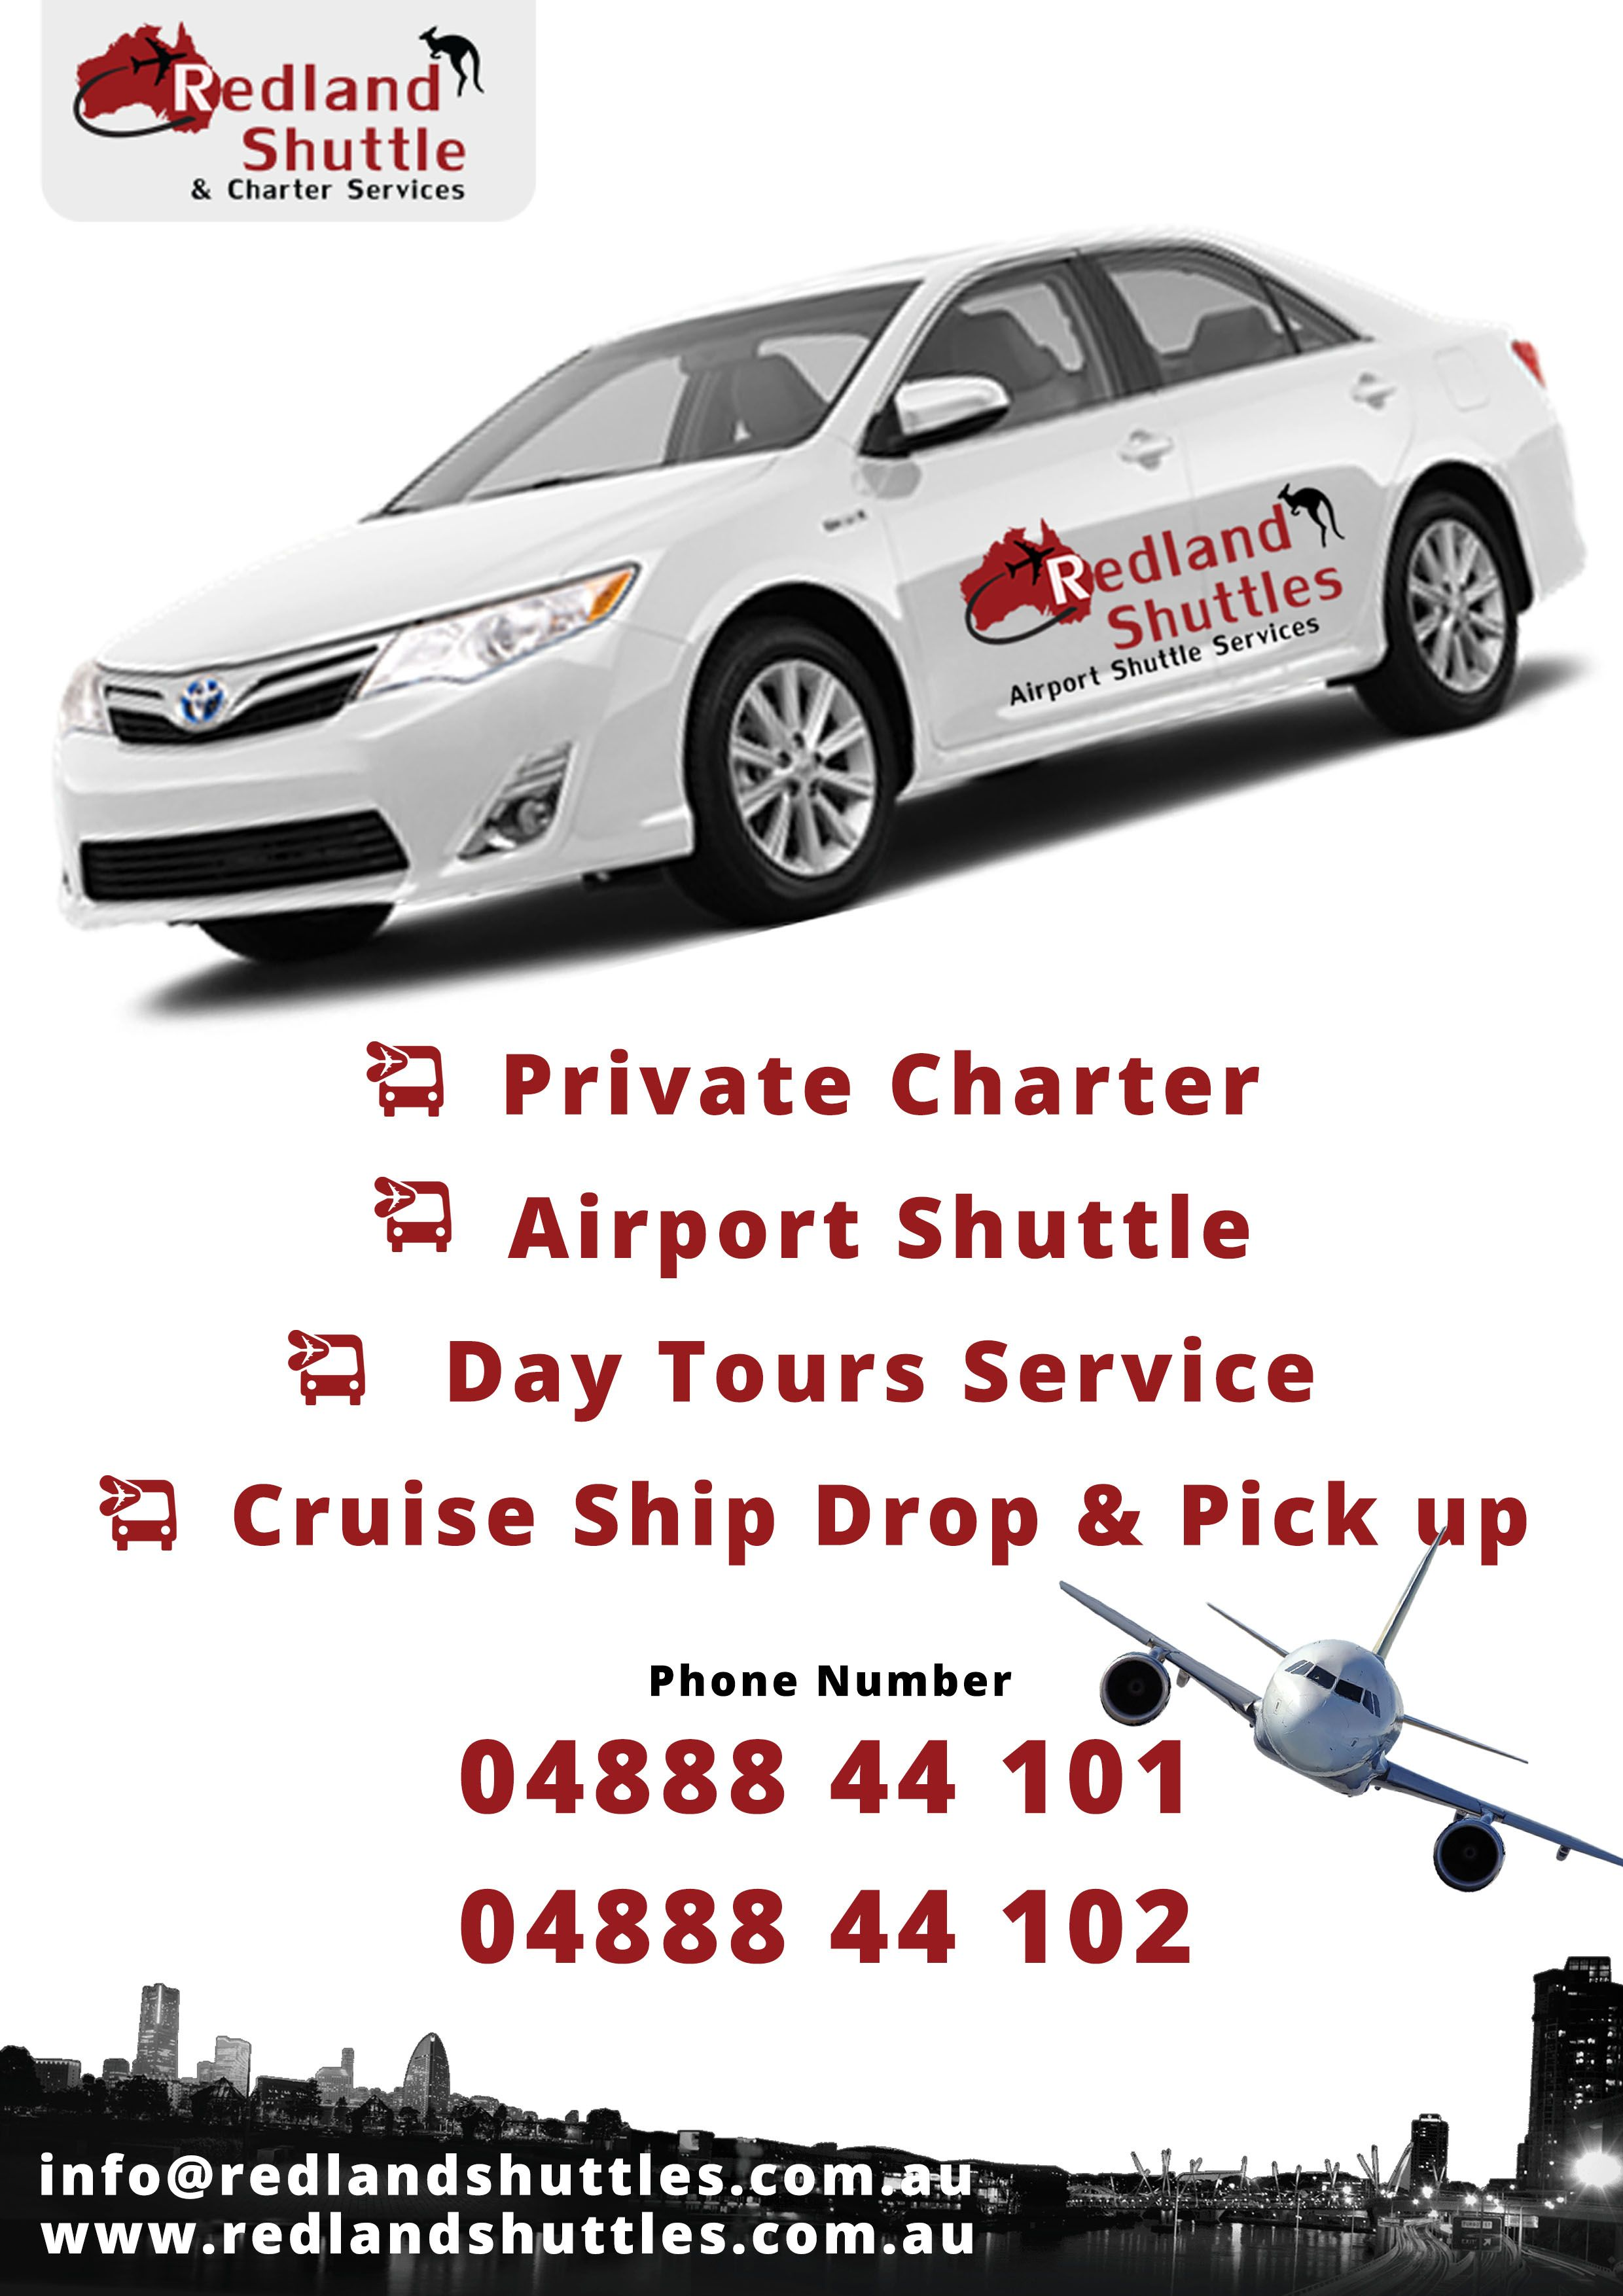 Redland shuttles specialized in 24hrs airport transfer